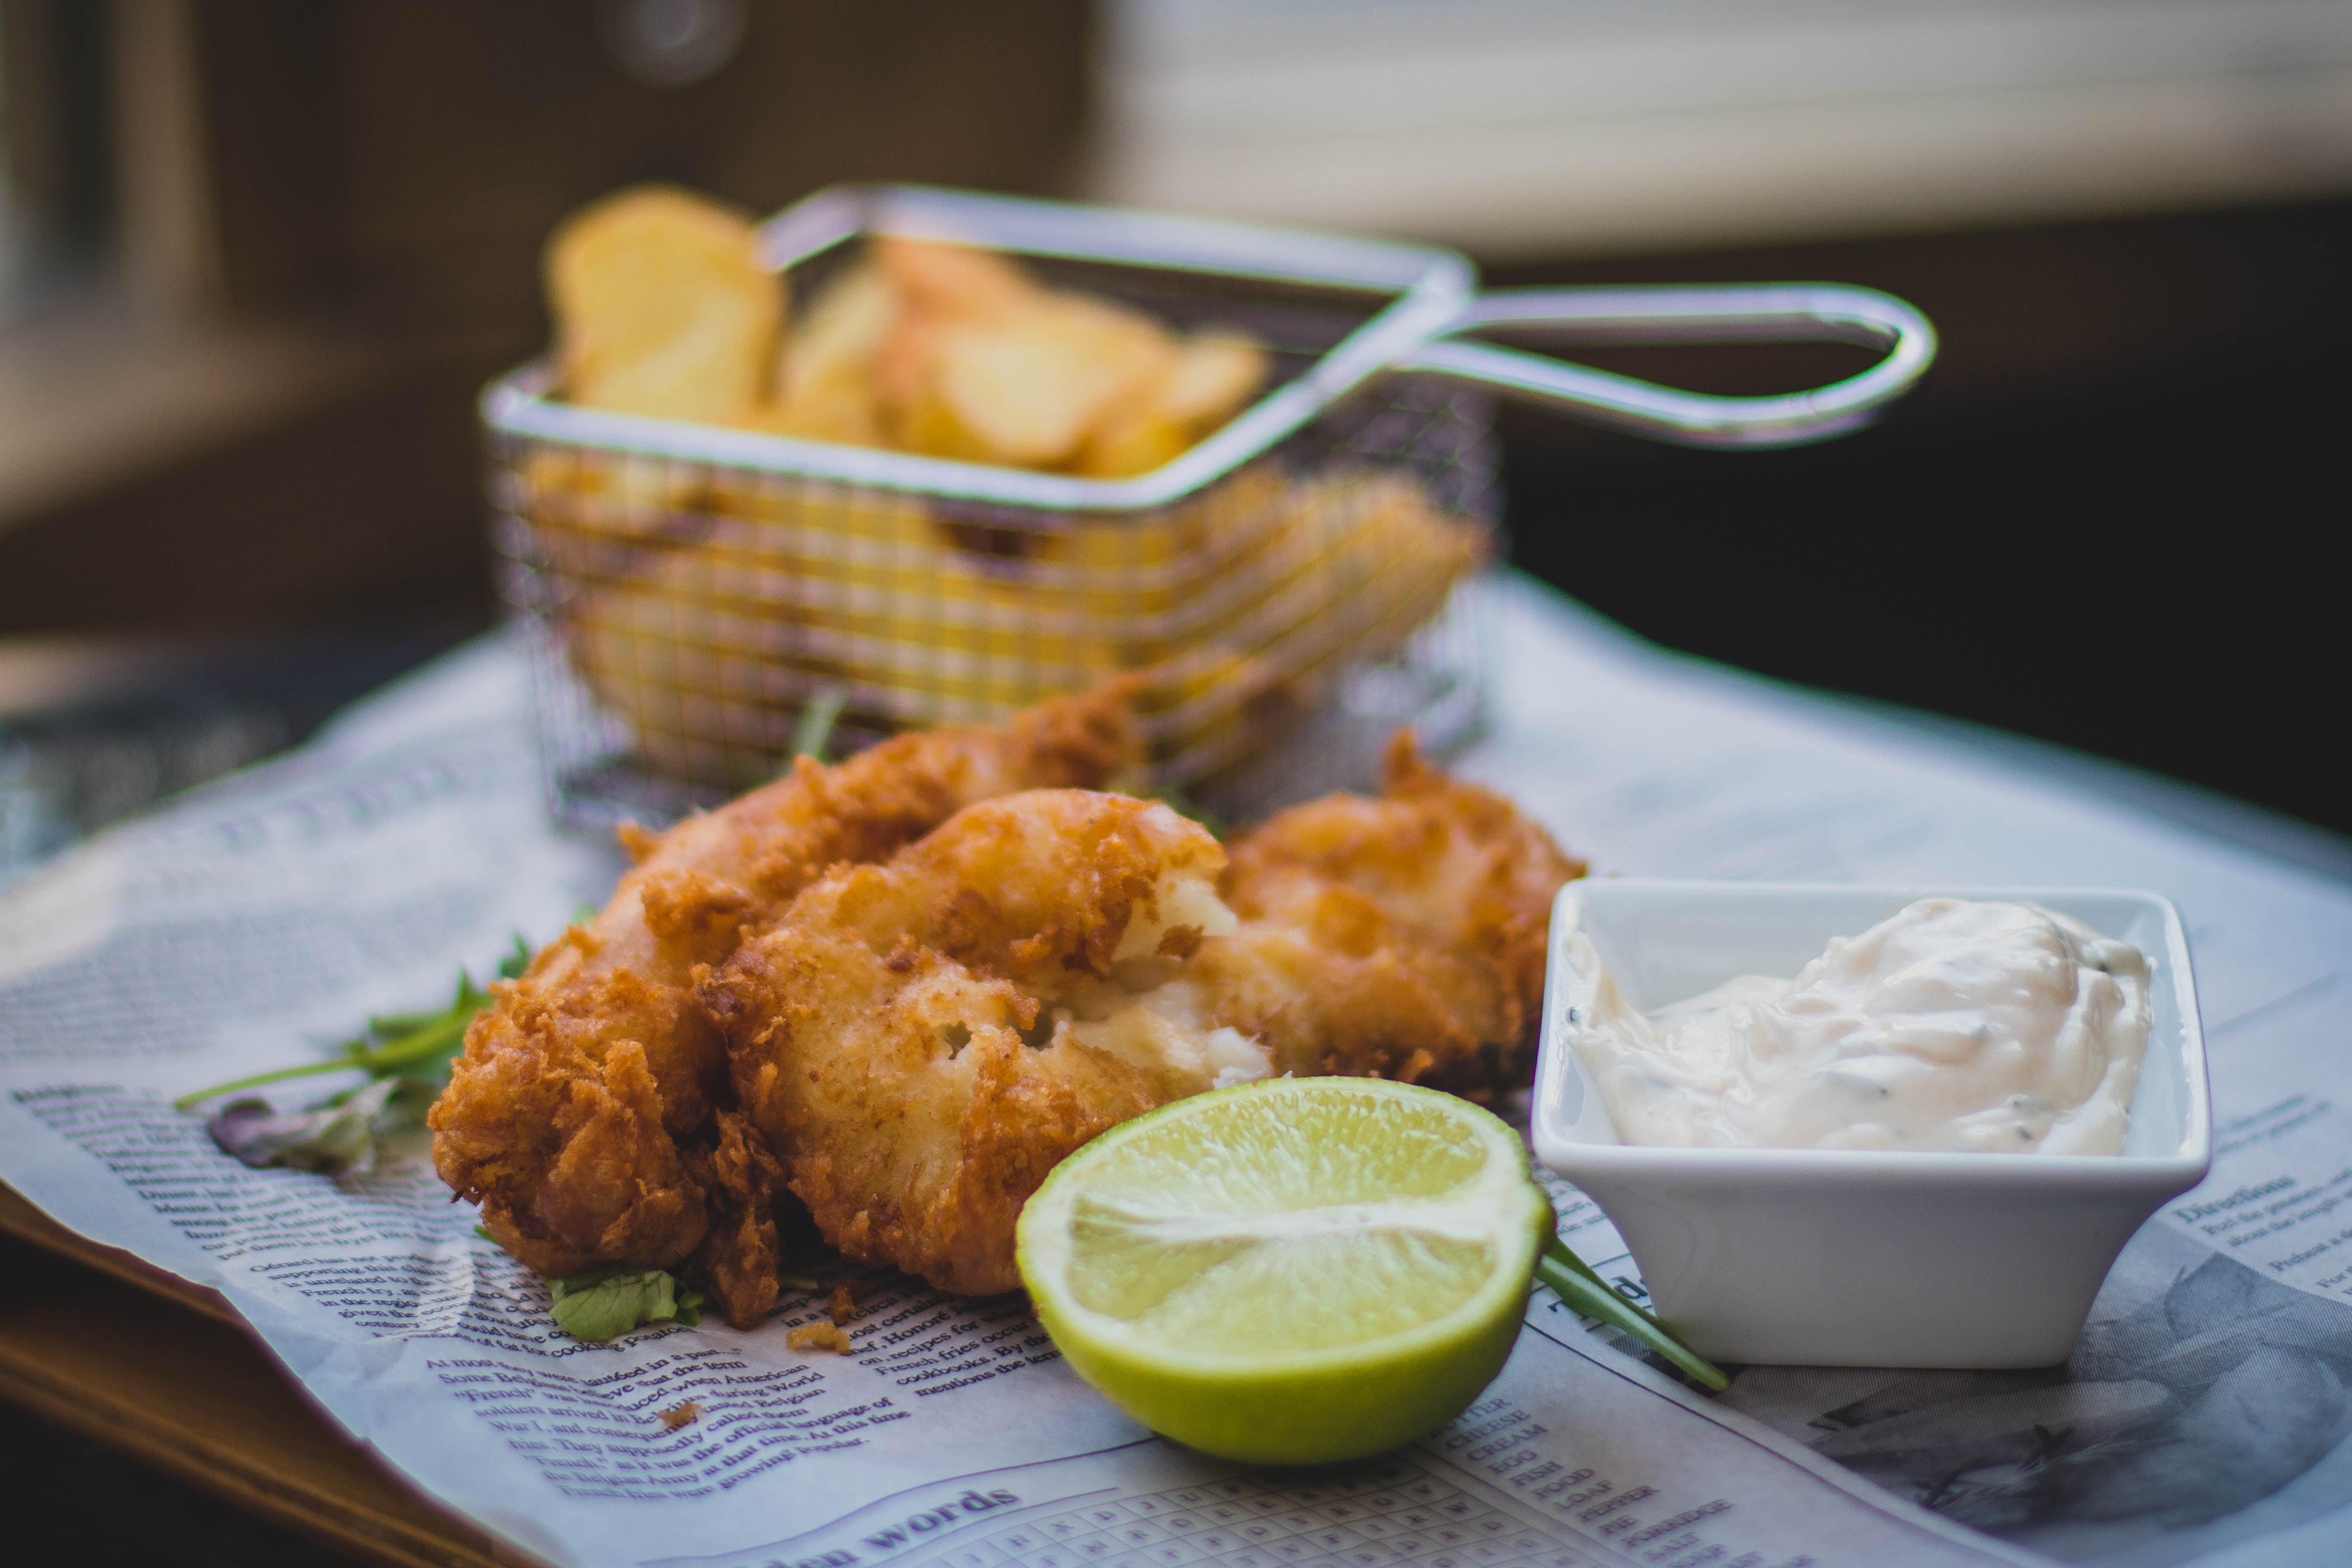 Fish & Chip Takeaway Food Business - Turnover of $850K+